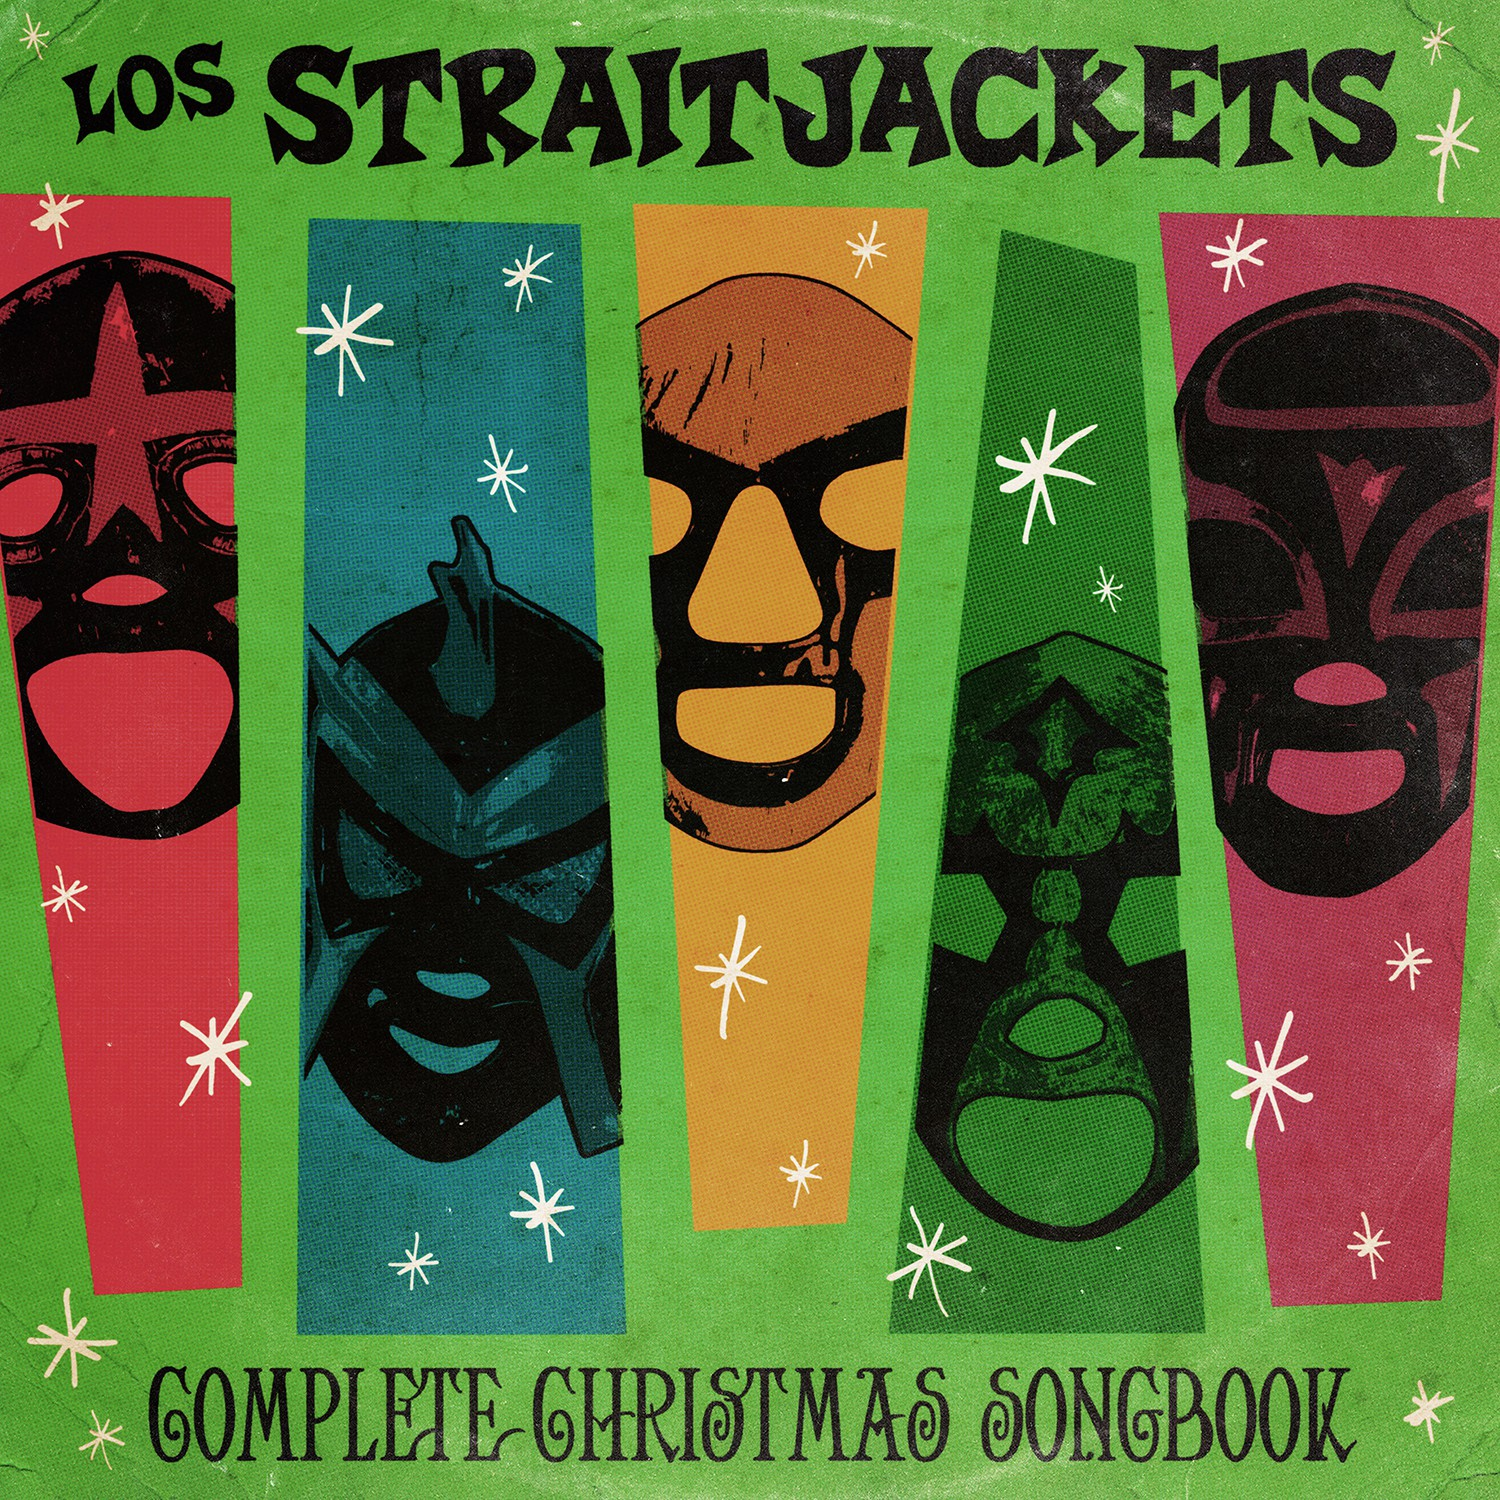 Los Straitjackets - Complete Christmas Songbook - CD